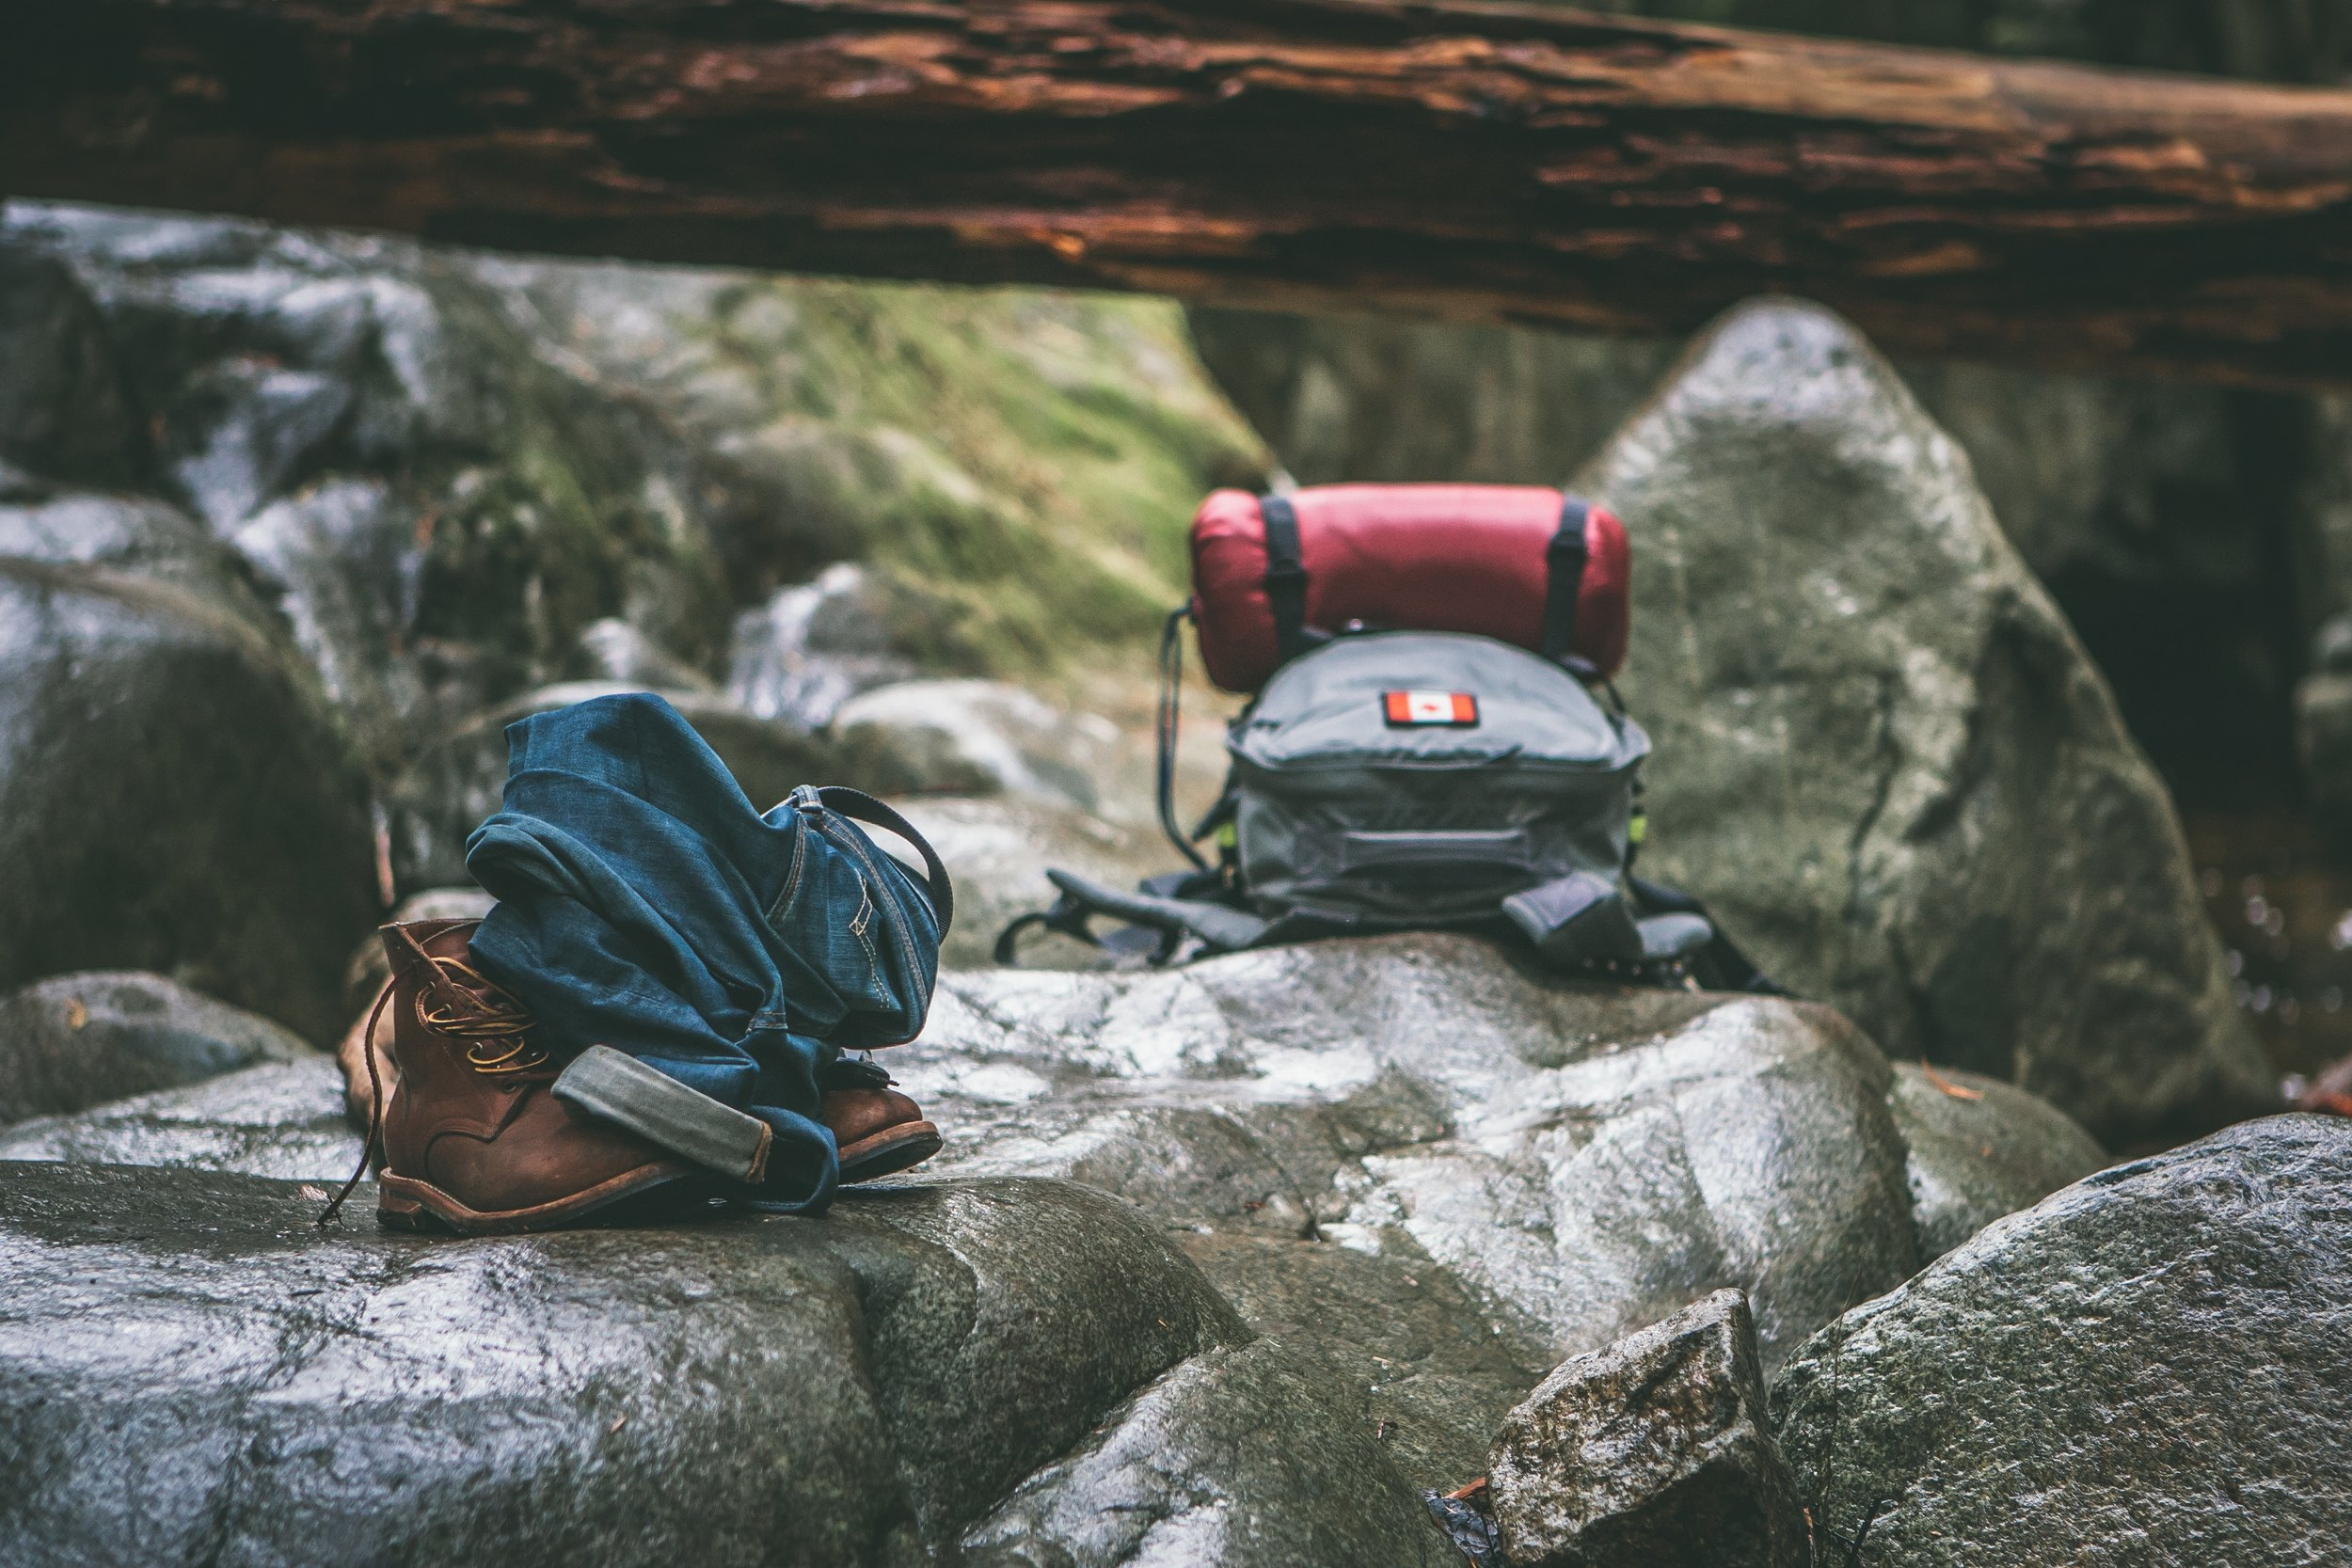 Hiking backpacks on boulders